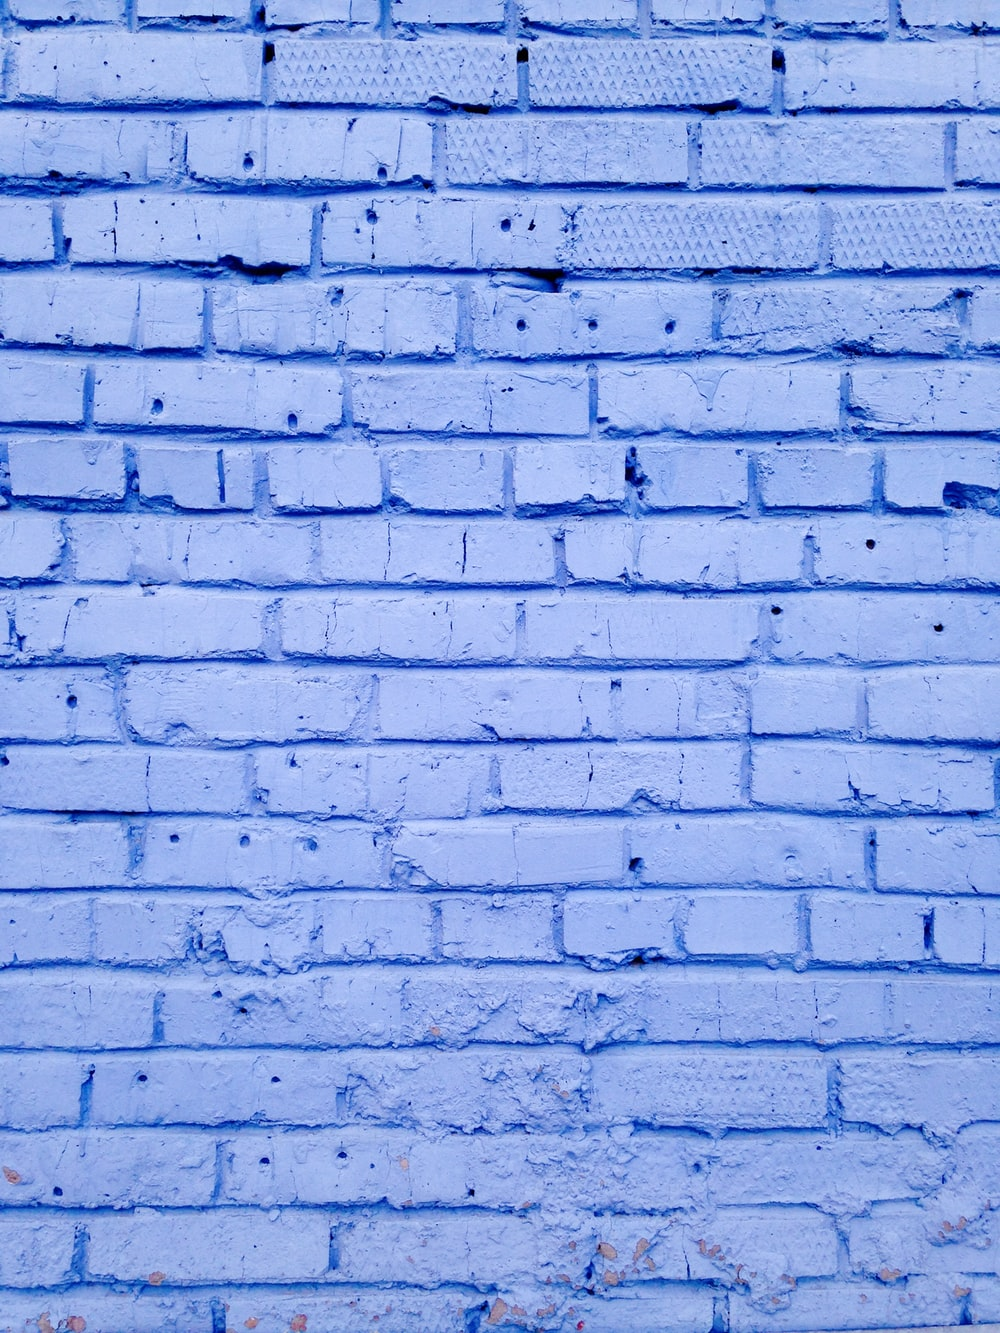 Blue, background, texture and brick | HD photo by David Pisnoy